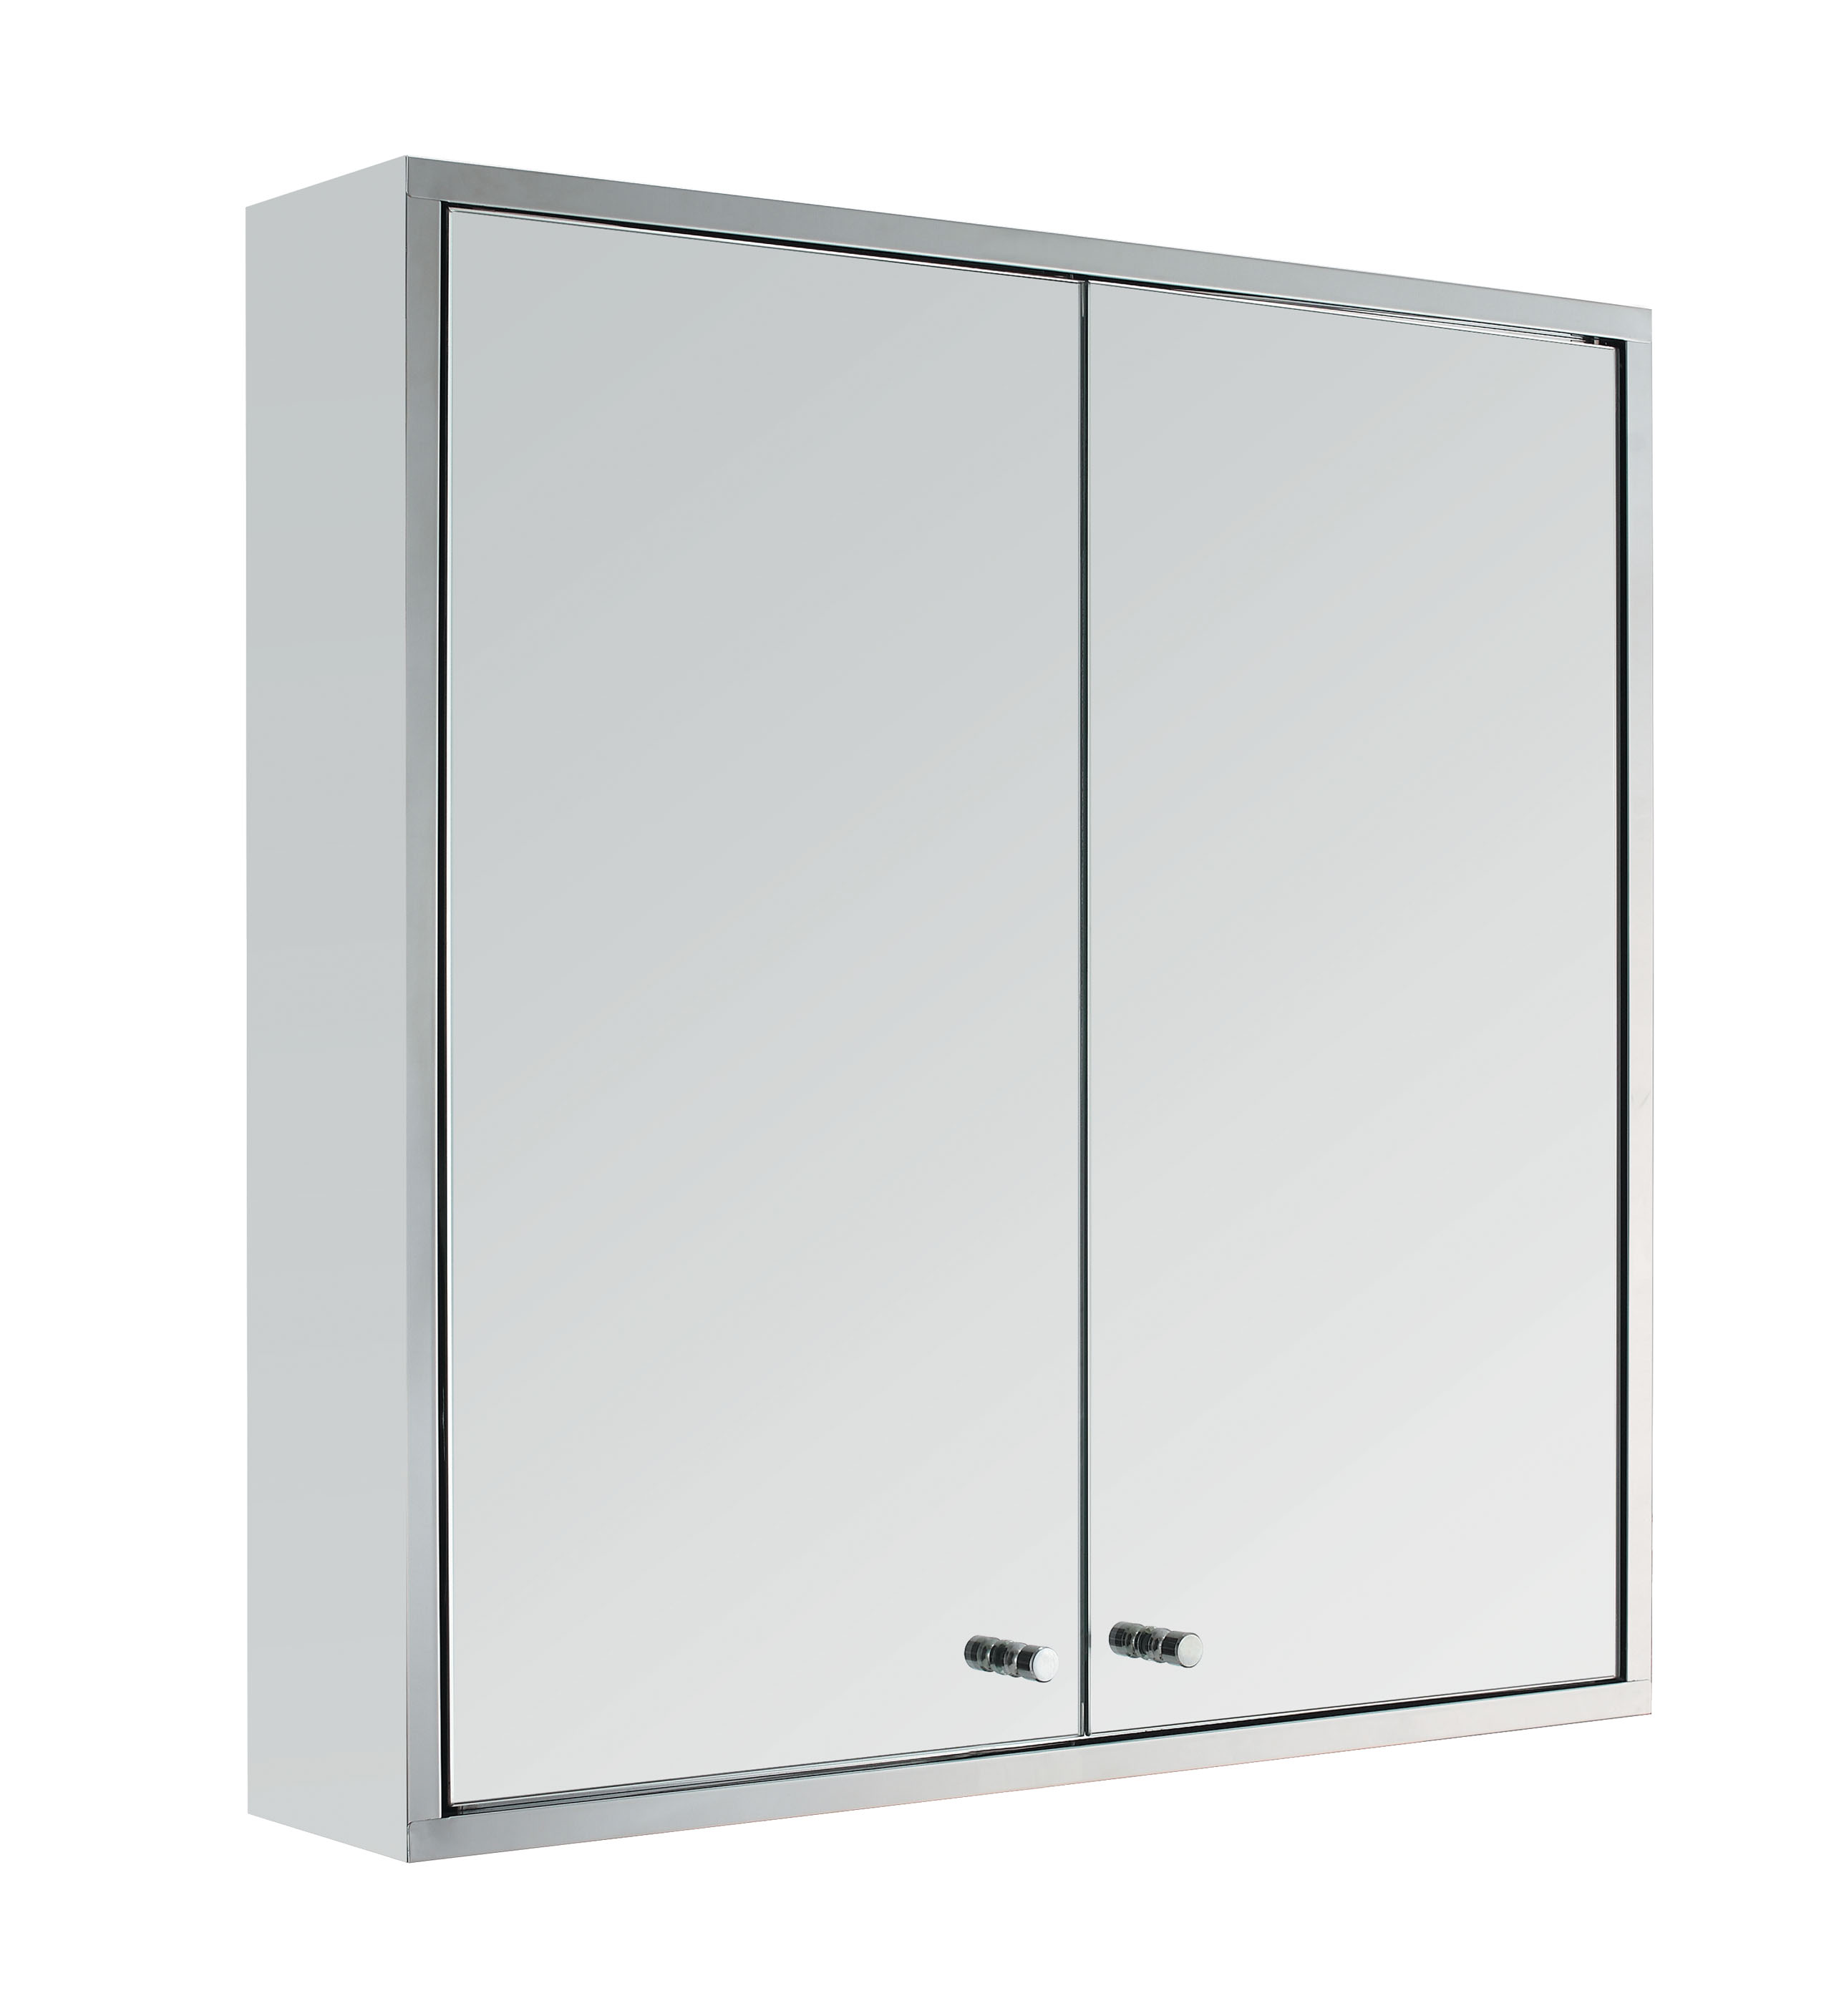 Bathroom mirror cabinets ikea - Stainless Steel Double Door Wall Mount Bathroom Cabinet Storage Cupboard Mirror